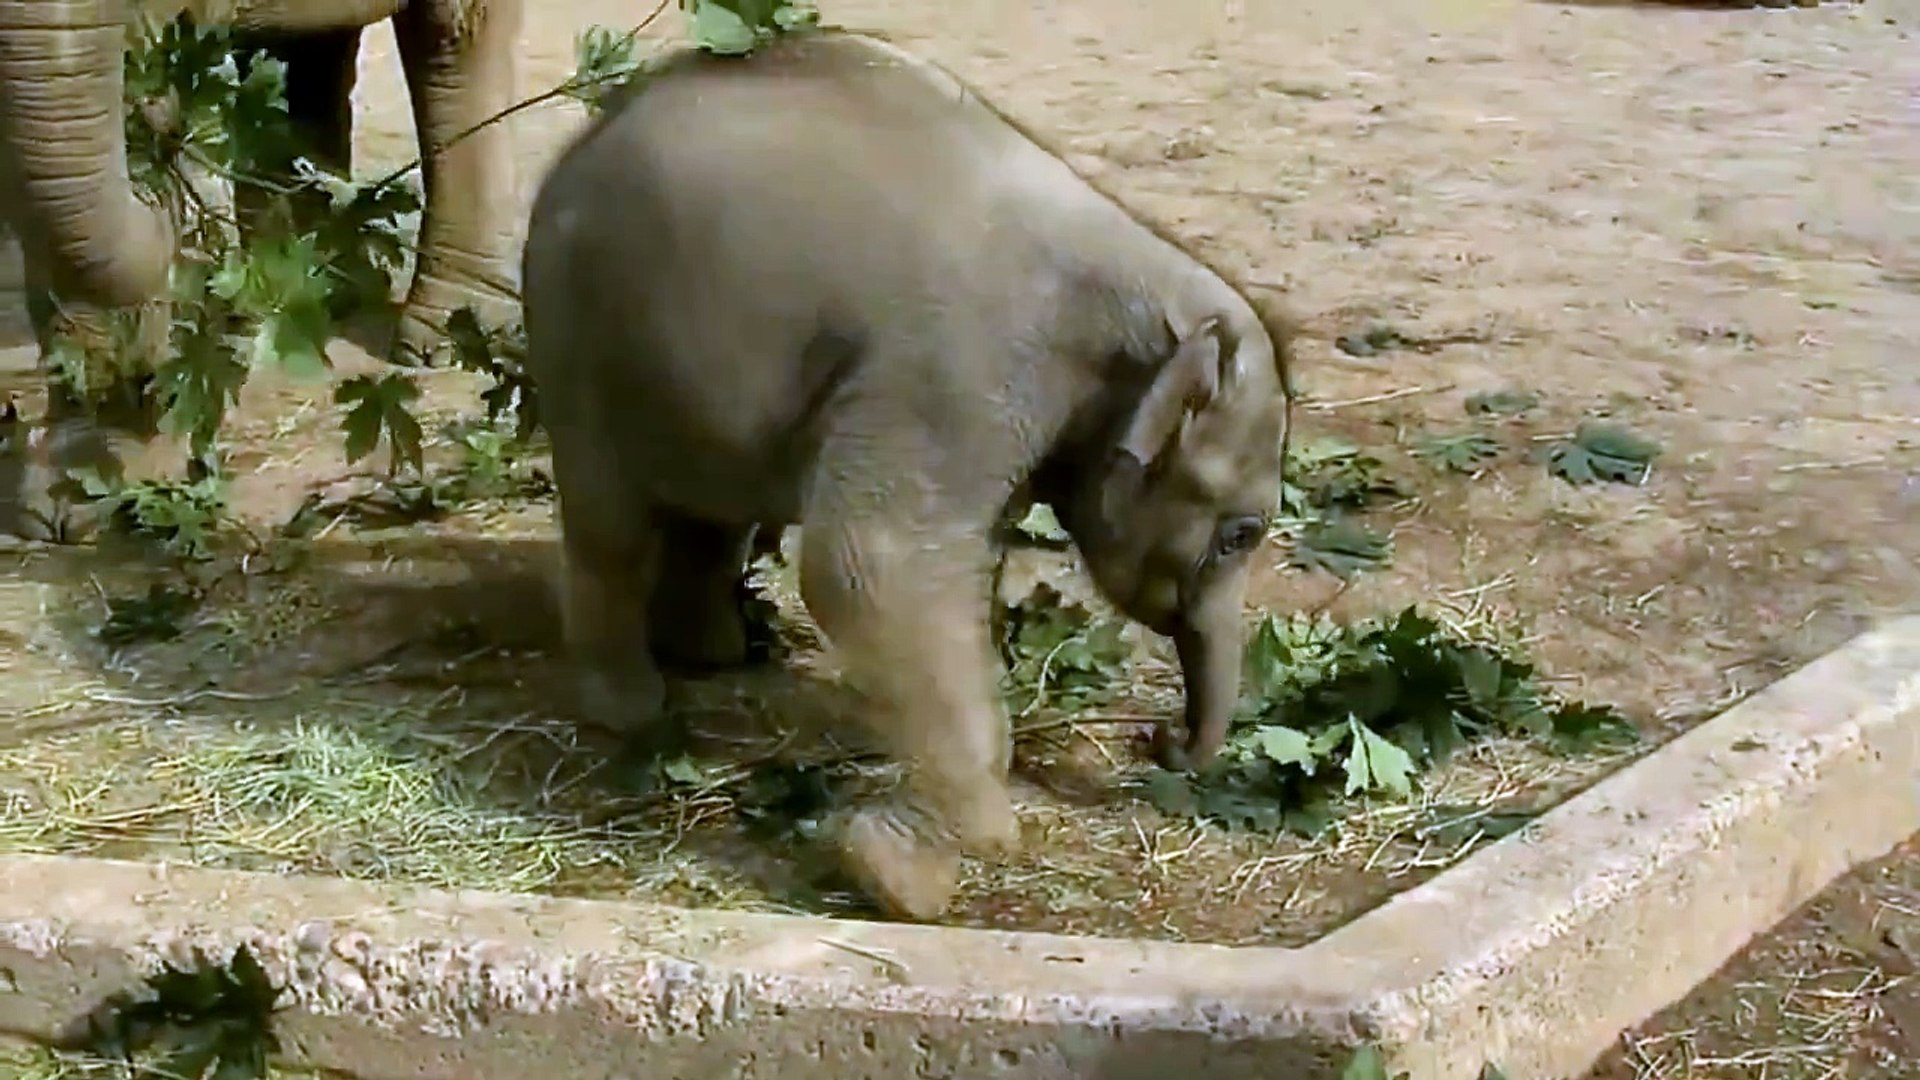 Cute baby elephant's first steps, cute video!